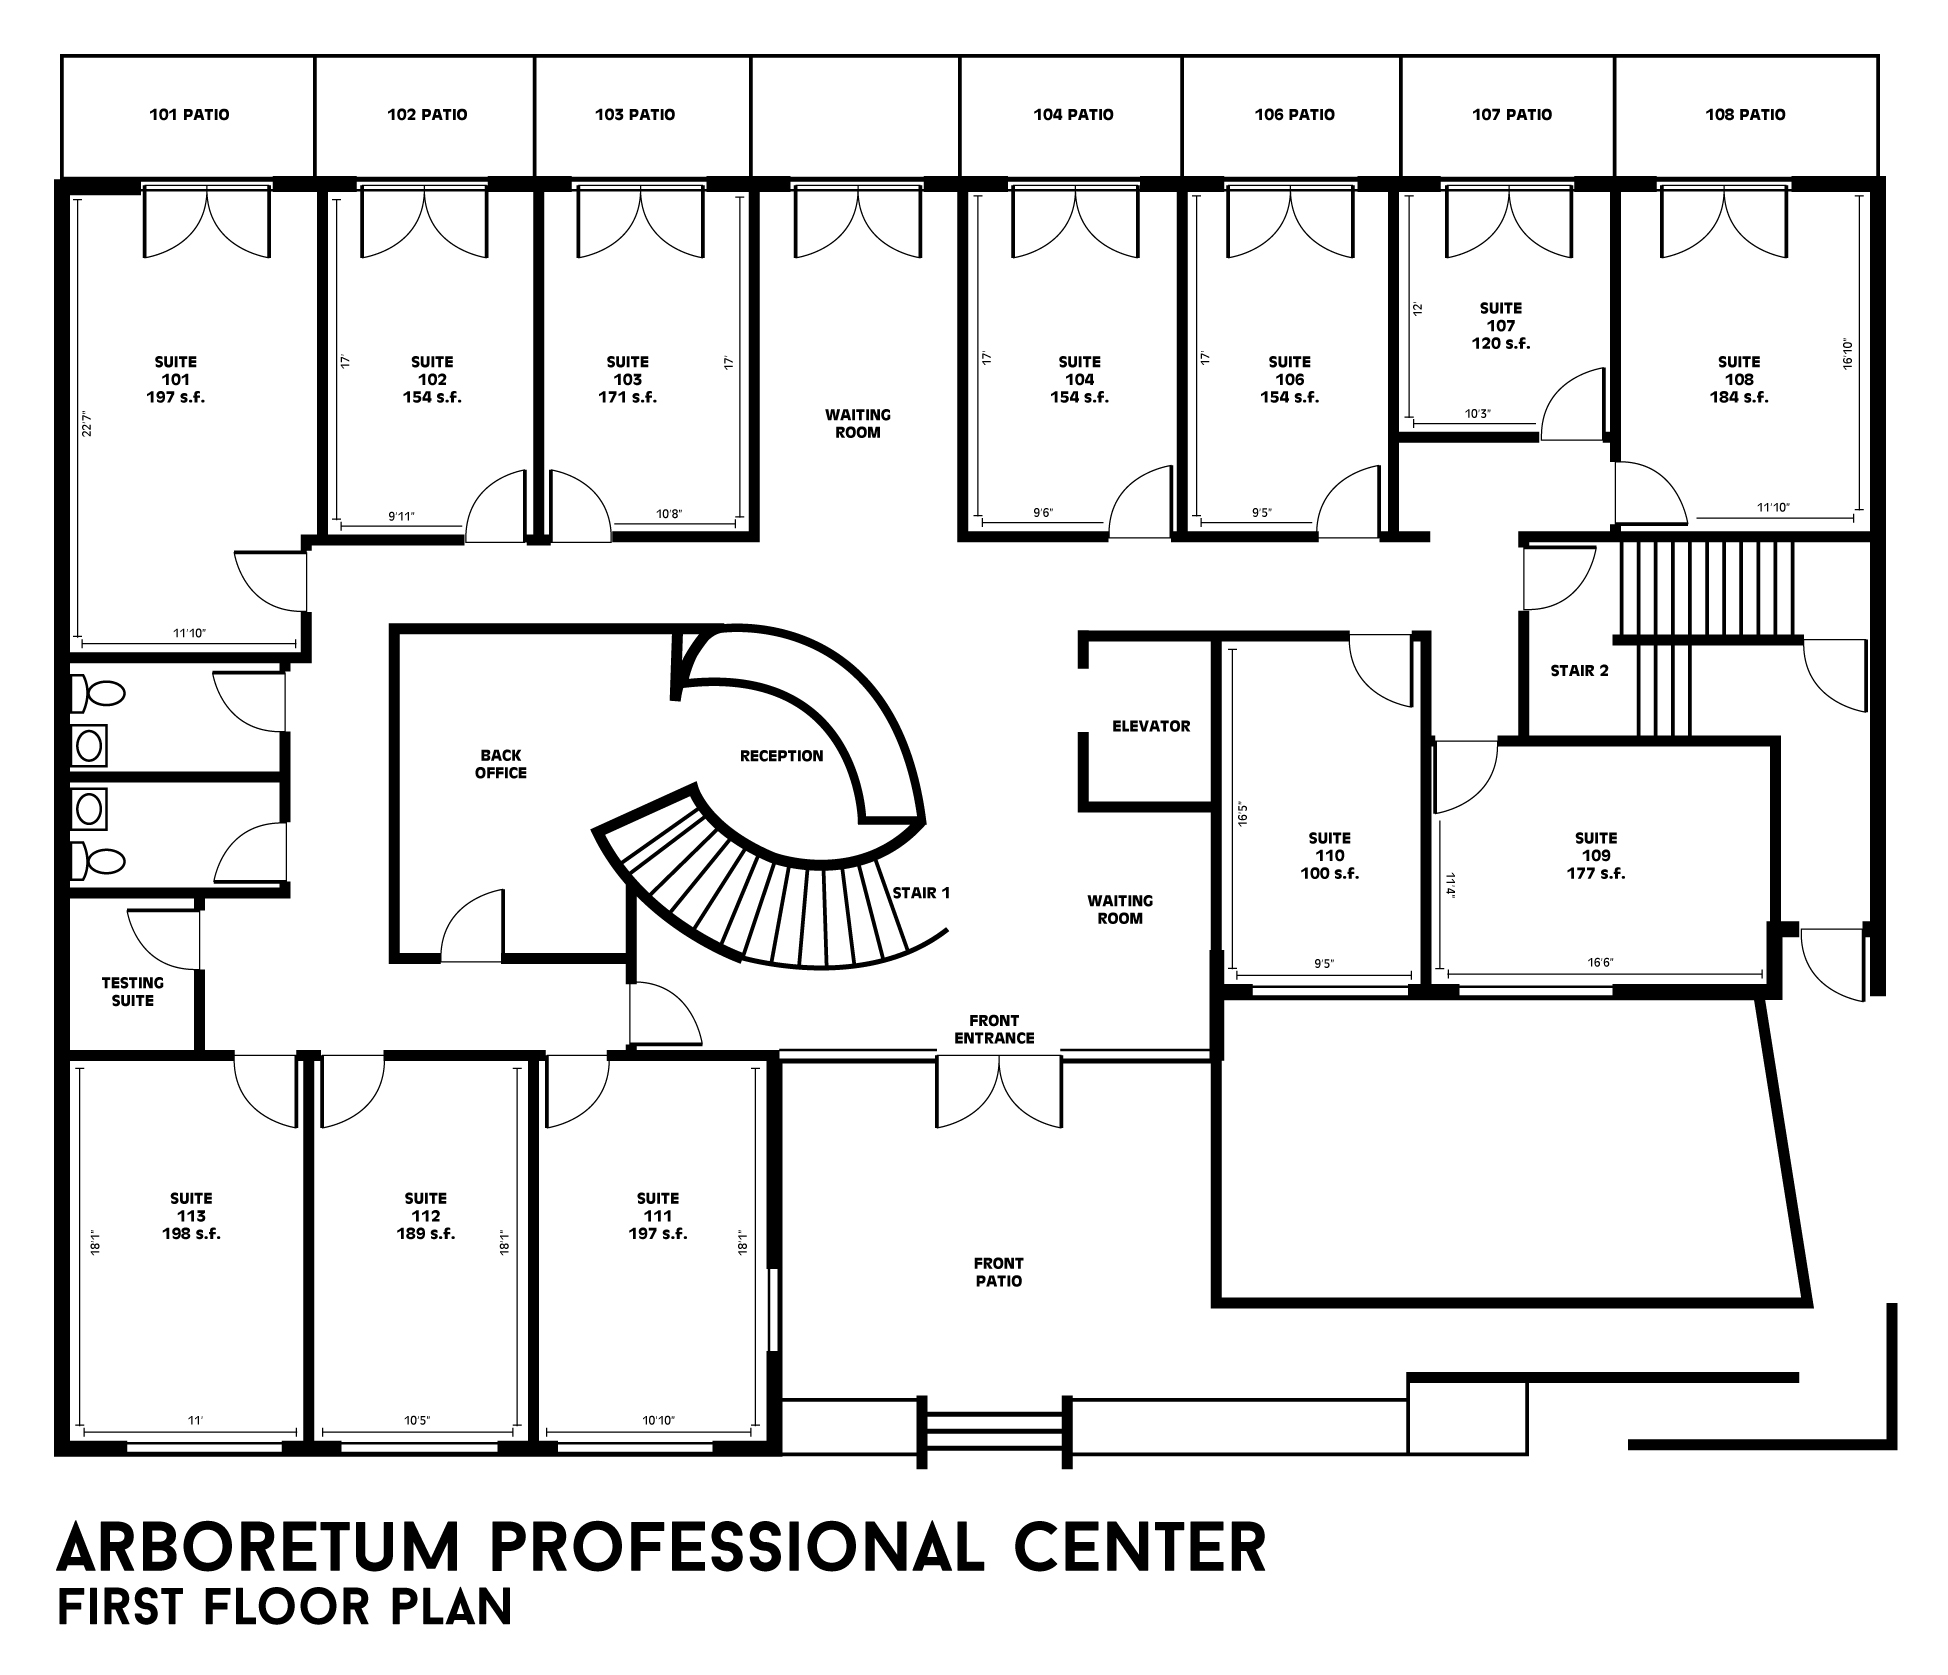 Building floor plans arboretum professional center for Build a floor plan online